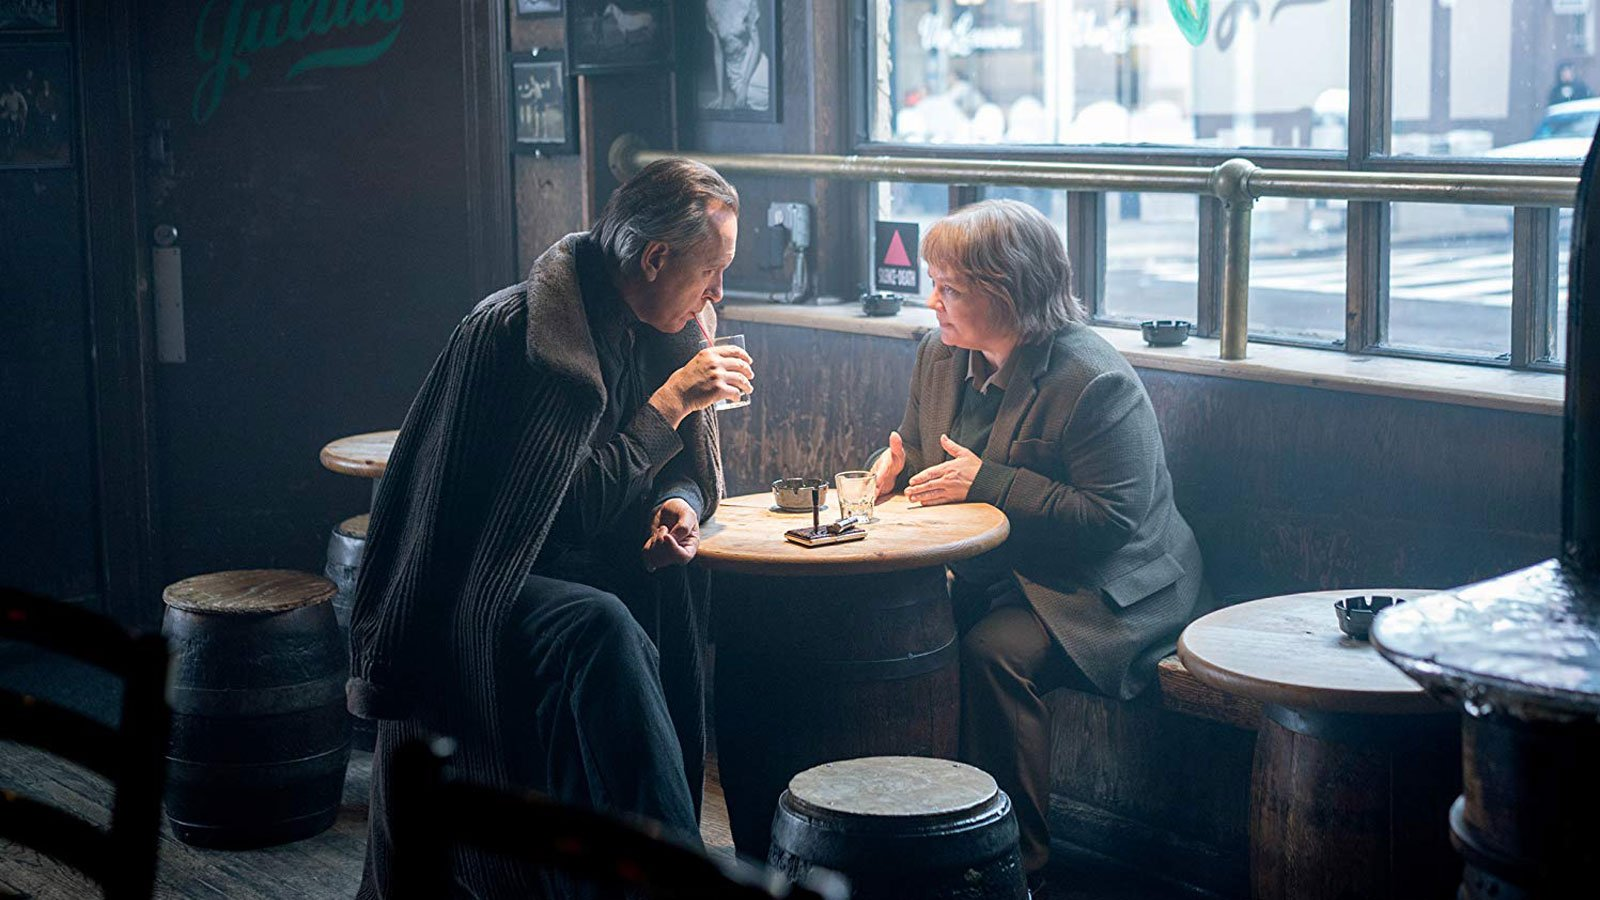 Can You Ever Forgive Me Review - OC Movie Reviews - Movie Reviews, Movie News, Documentary Reviews, Short Films, Short Film Reviews, Trailers, Movie Trailers, Interviews, film reviews, film news, hollywood, indie films, documentaries, TV shows